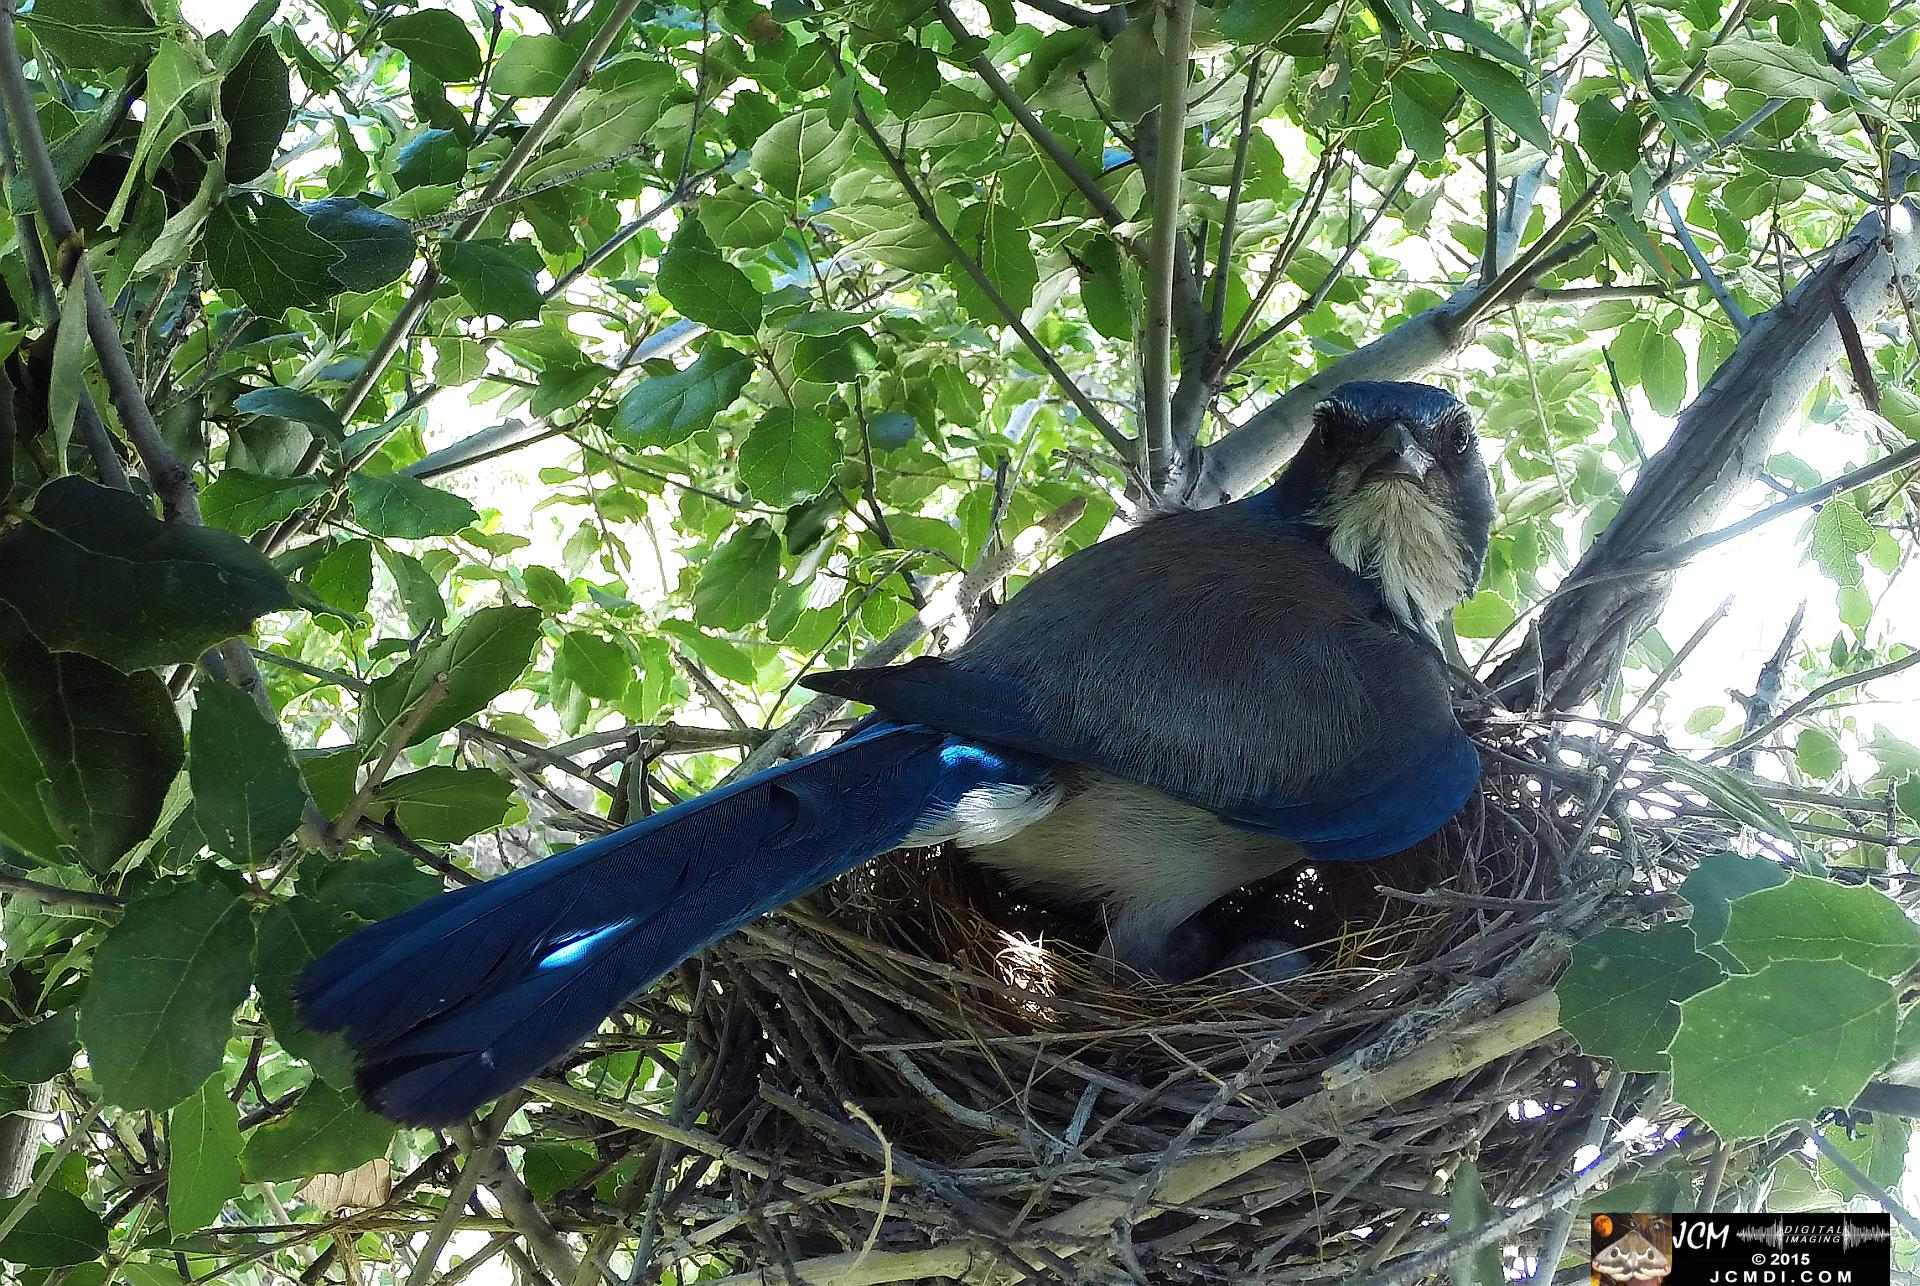 Scrub Jay wide view female in nest looking at camera